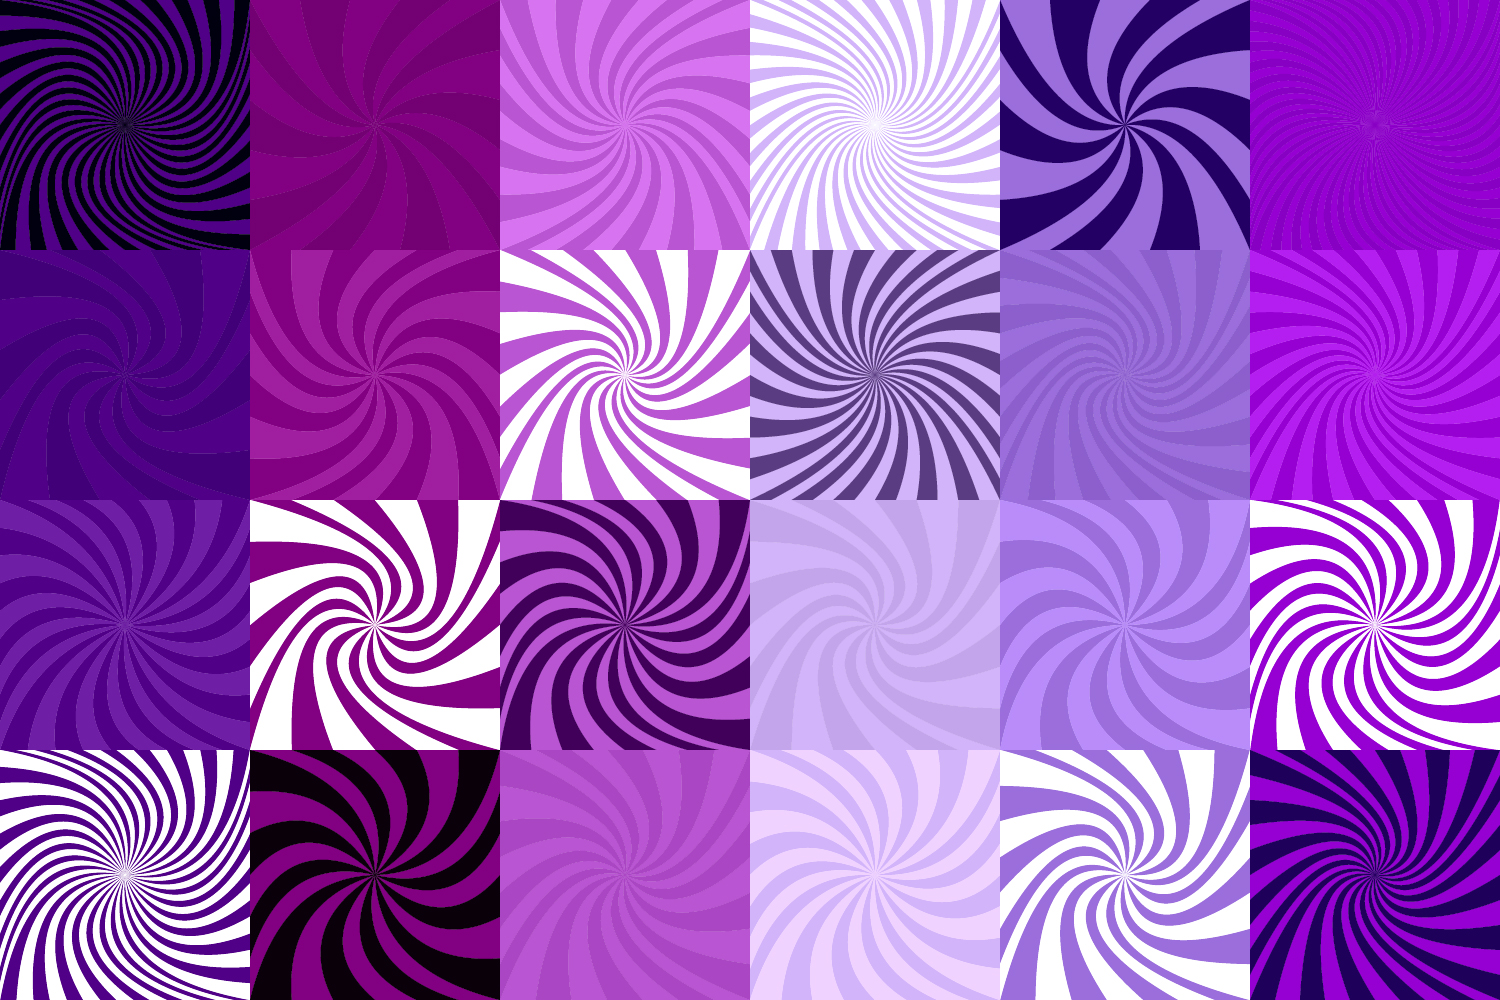 24 Purple Spiral Backgrounds AI, EPS, JPG 5000x5000 example image 4